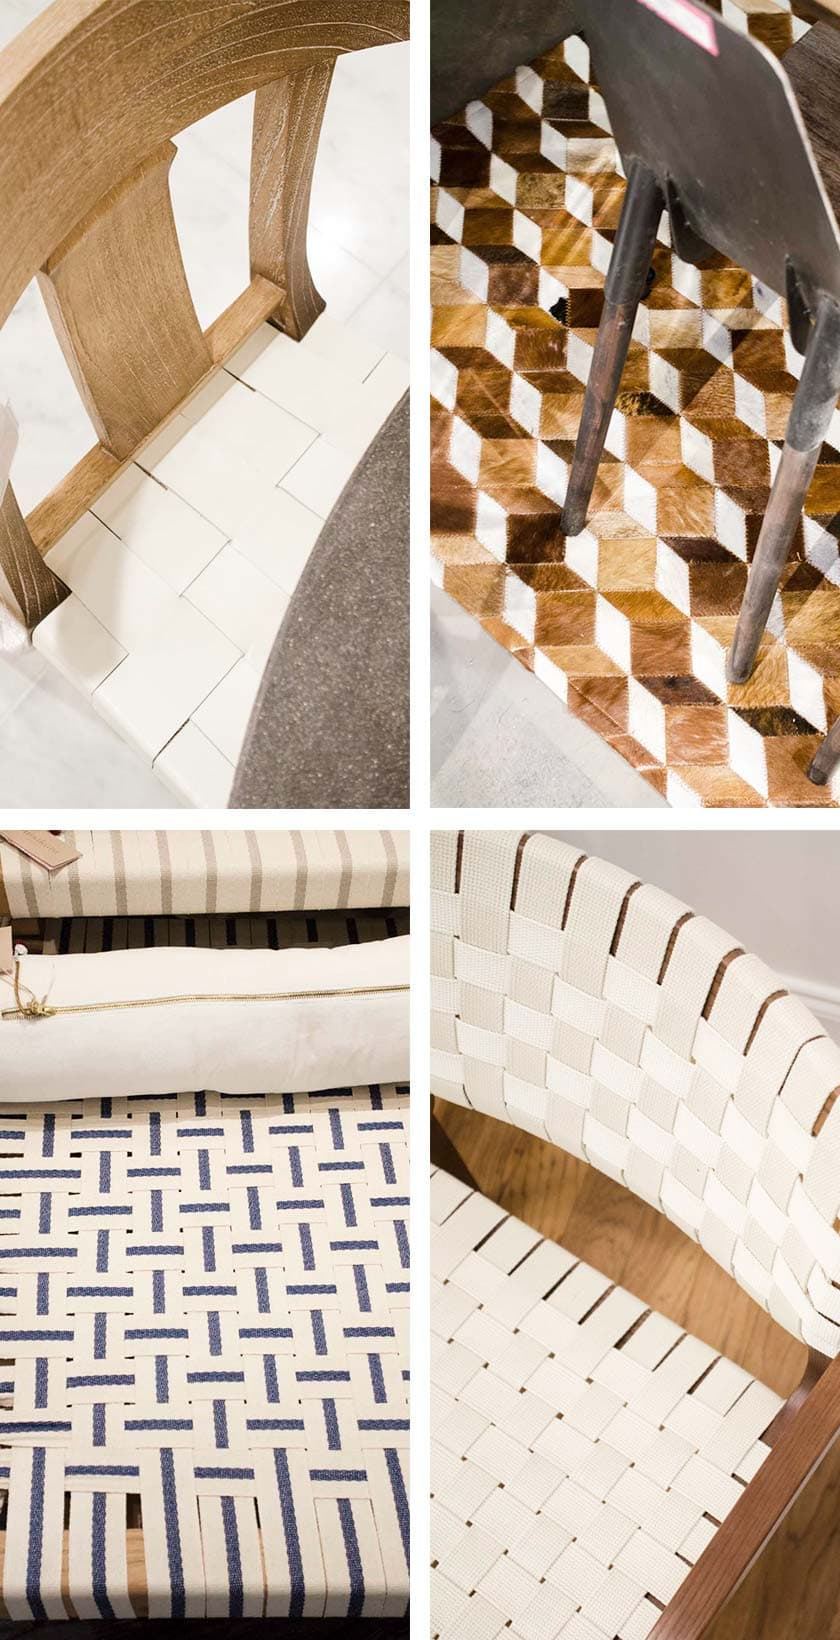 Woven leather and upholstery decor trend from AmericasMart on Thou Swell @thouswellblog